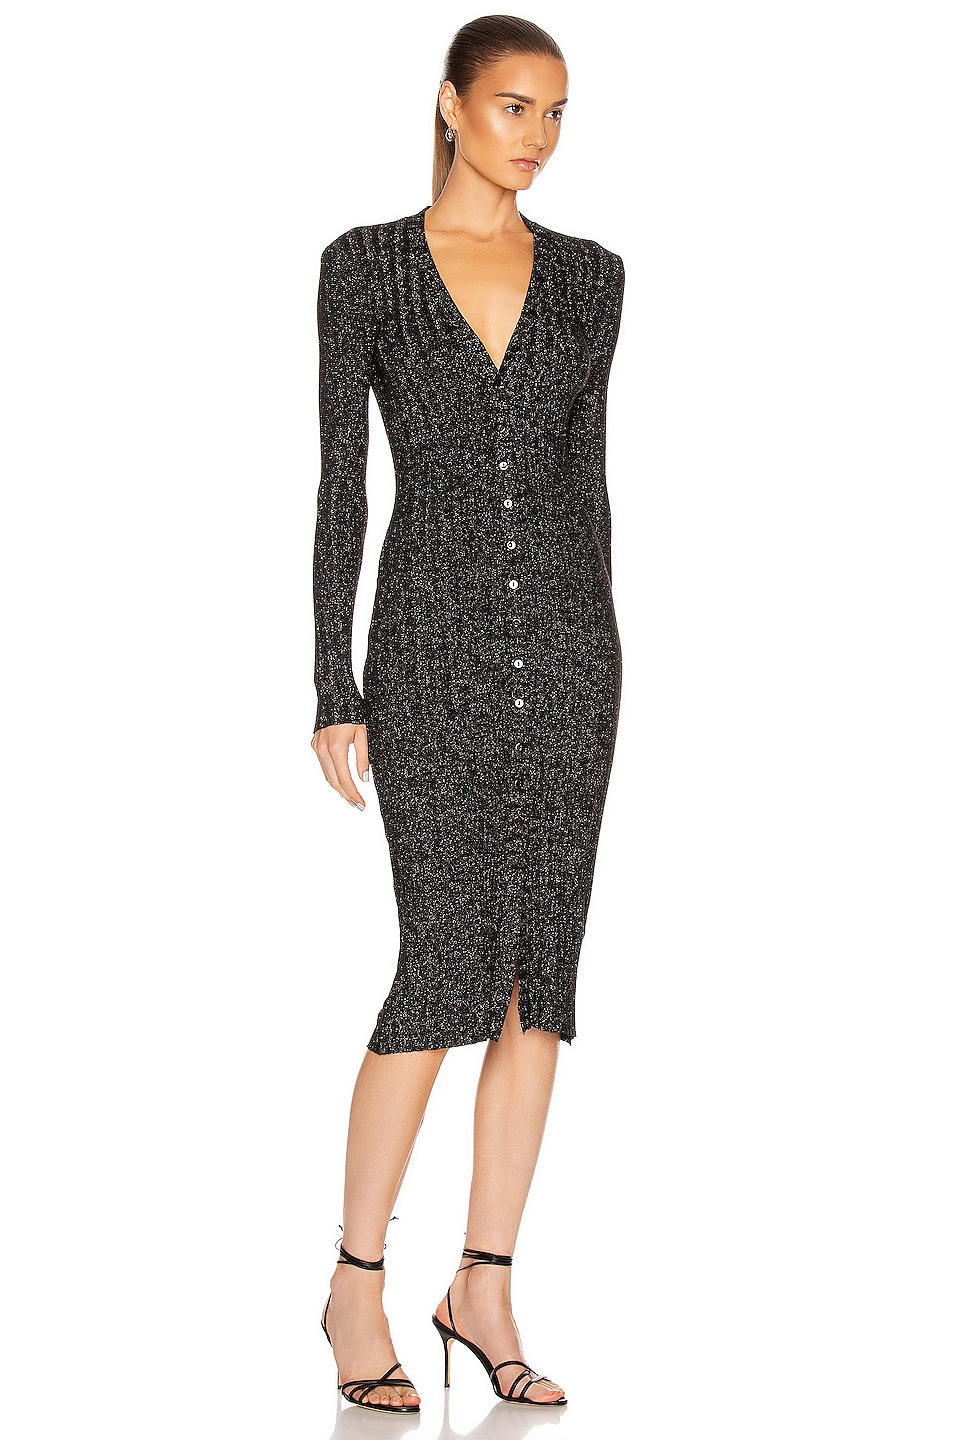 Image 2 of Enza Costa Lurex Rib Long Sleeve Cardigan Midi Dress in Black & Silver